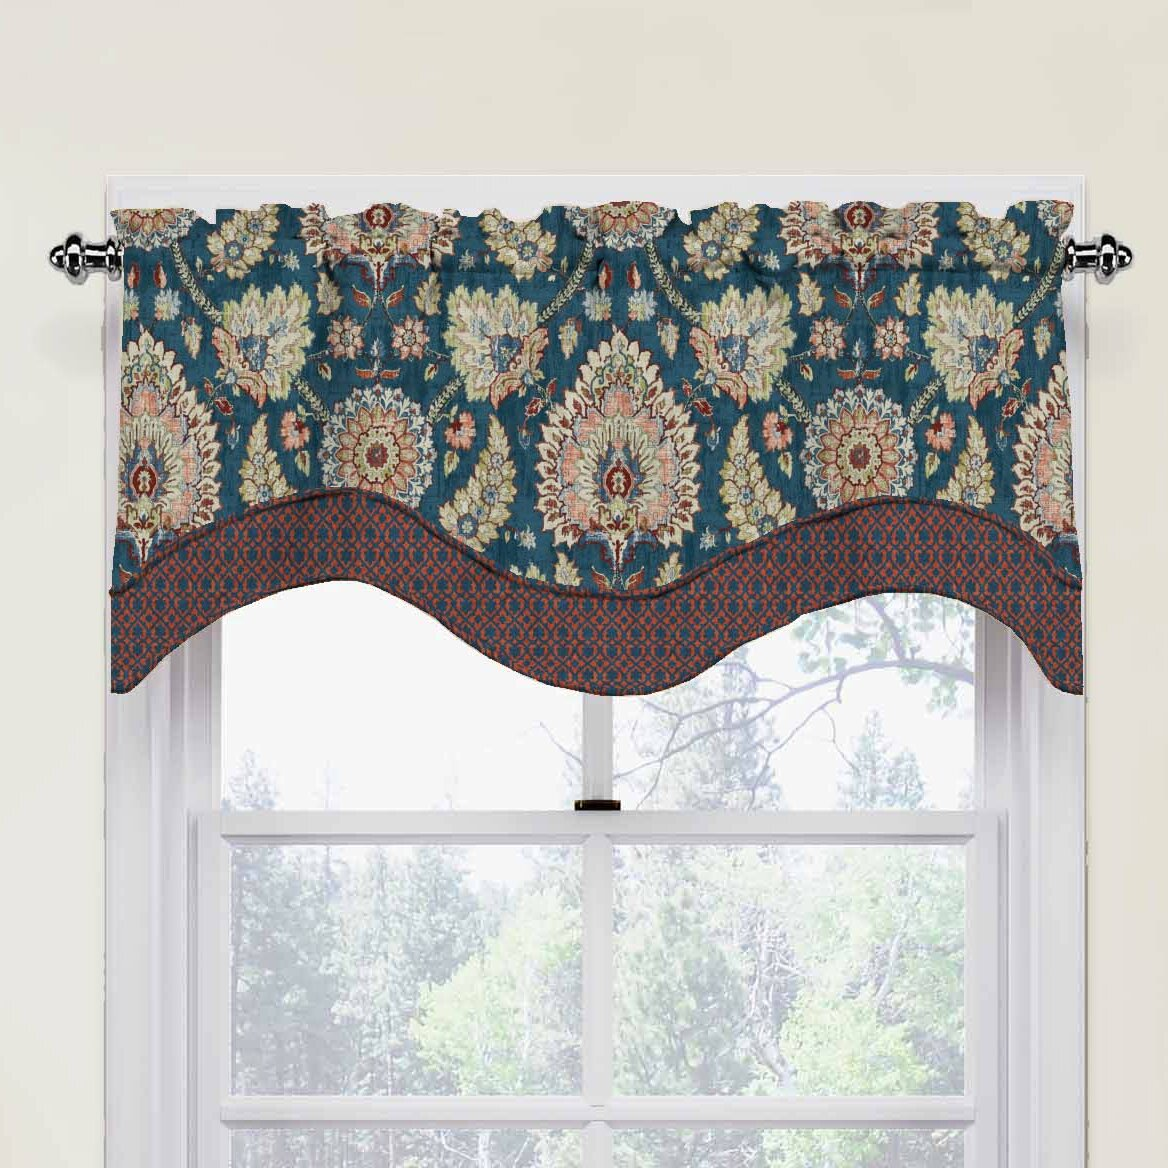 over valance shipping jacquard overstock product park on home window whitman free madison garden brown orders